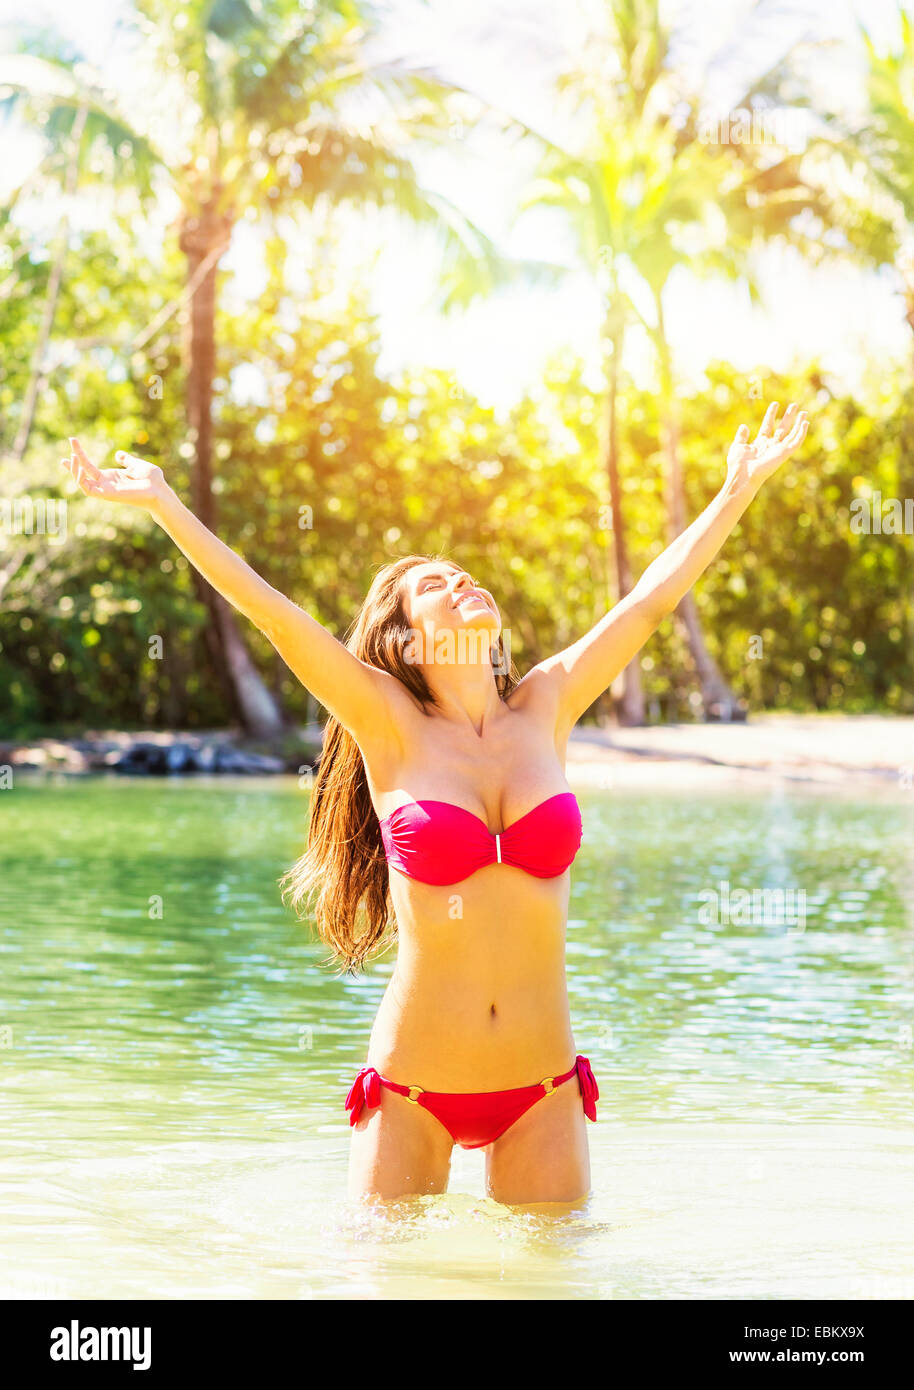 USA, Florida, Jupiter, Portrait of young woman wearing bikini standing in waters of tropical lagoon, raising arms Stock Photo